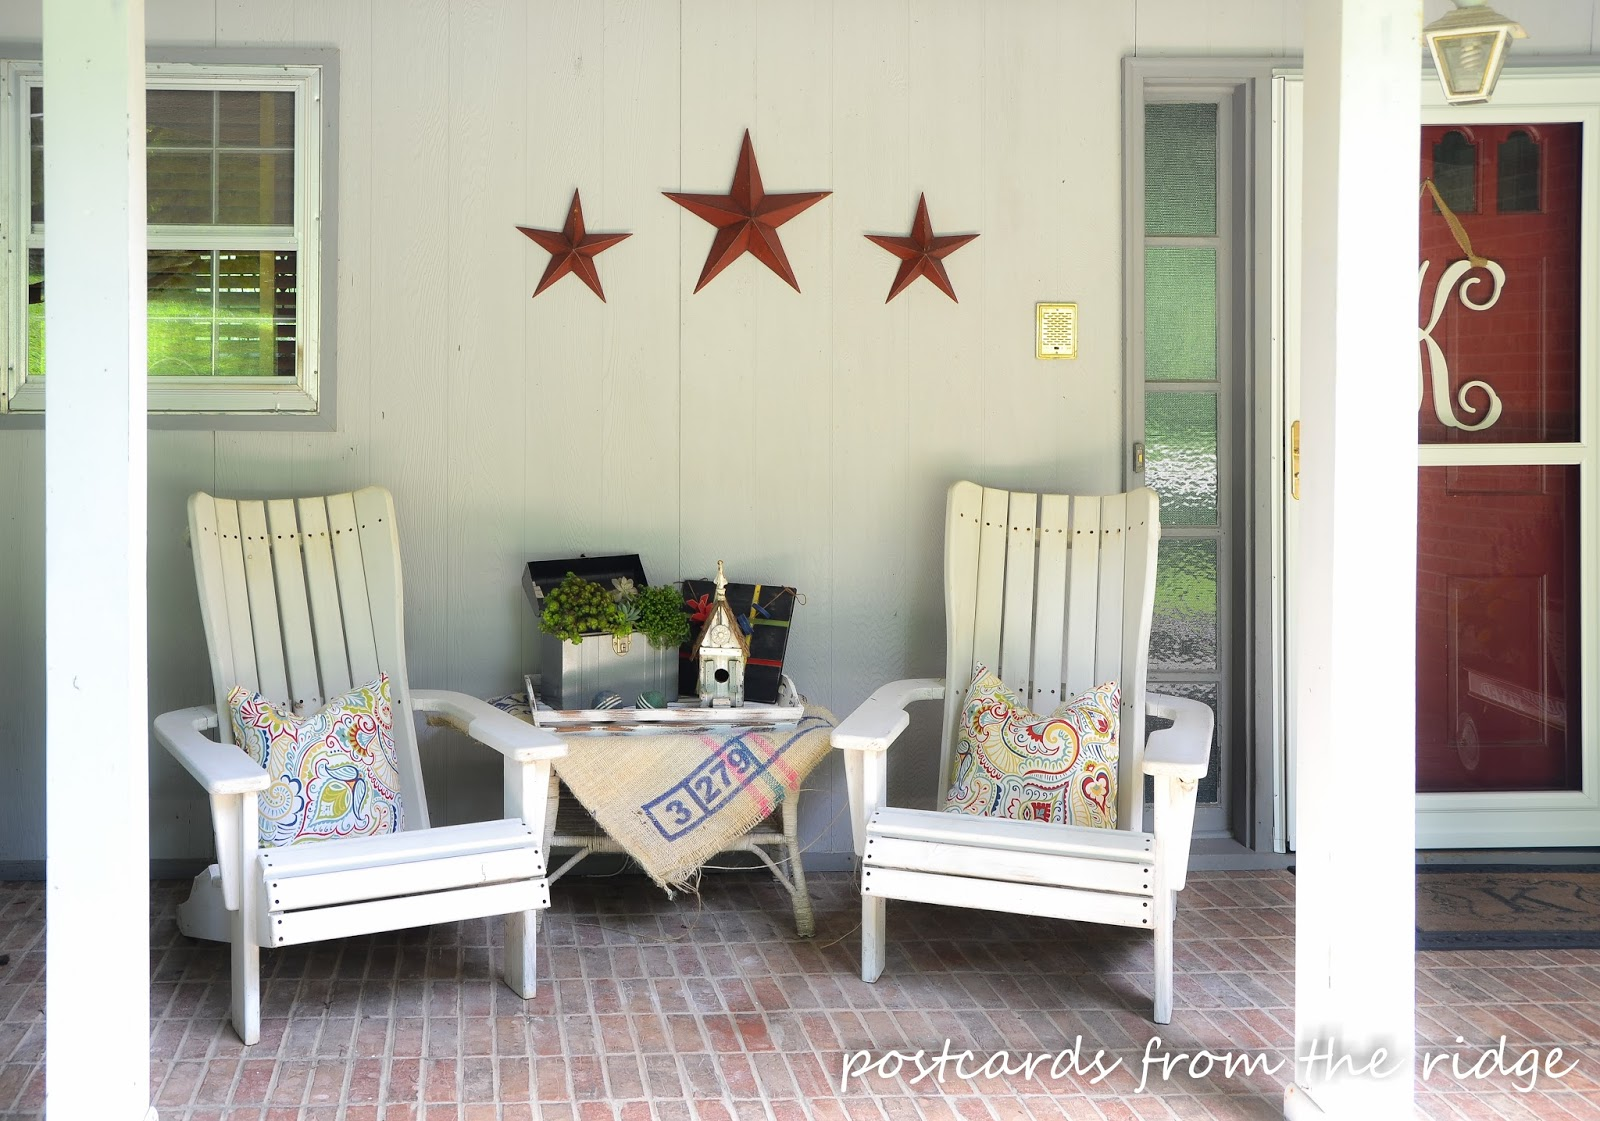 white Adirondack chairs with outdoor pillows and summer decor